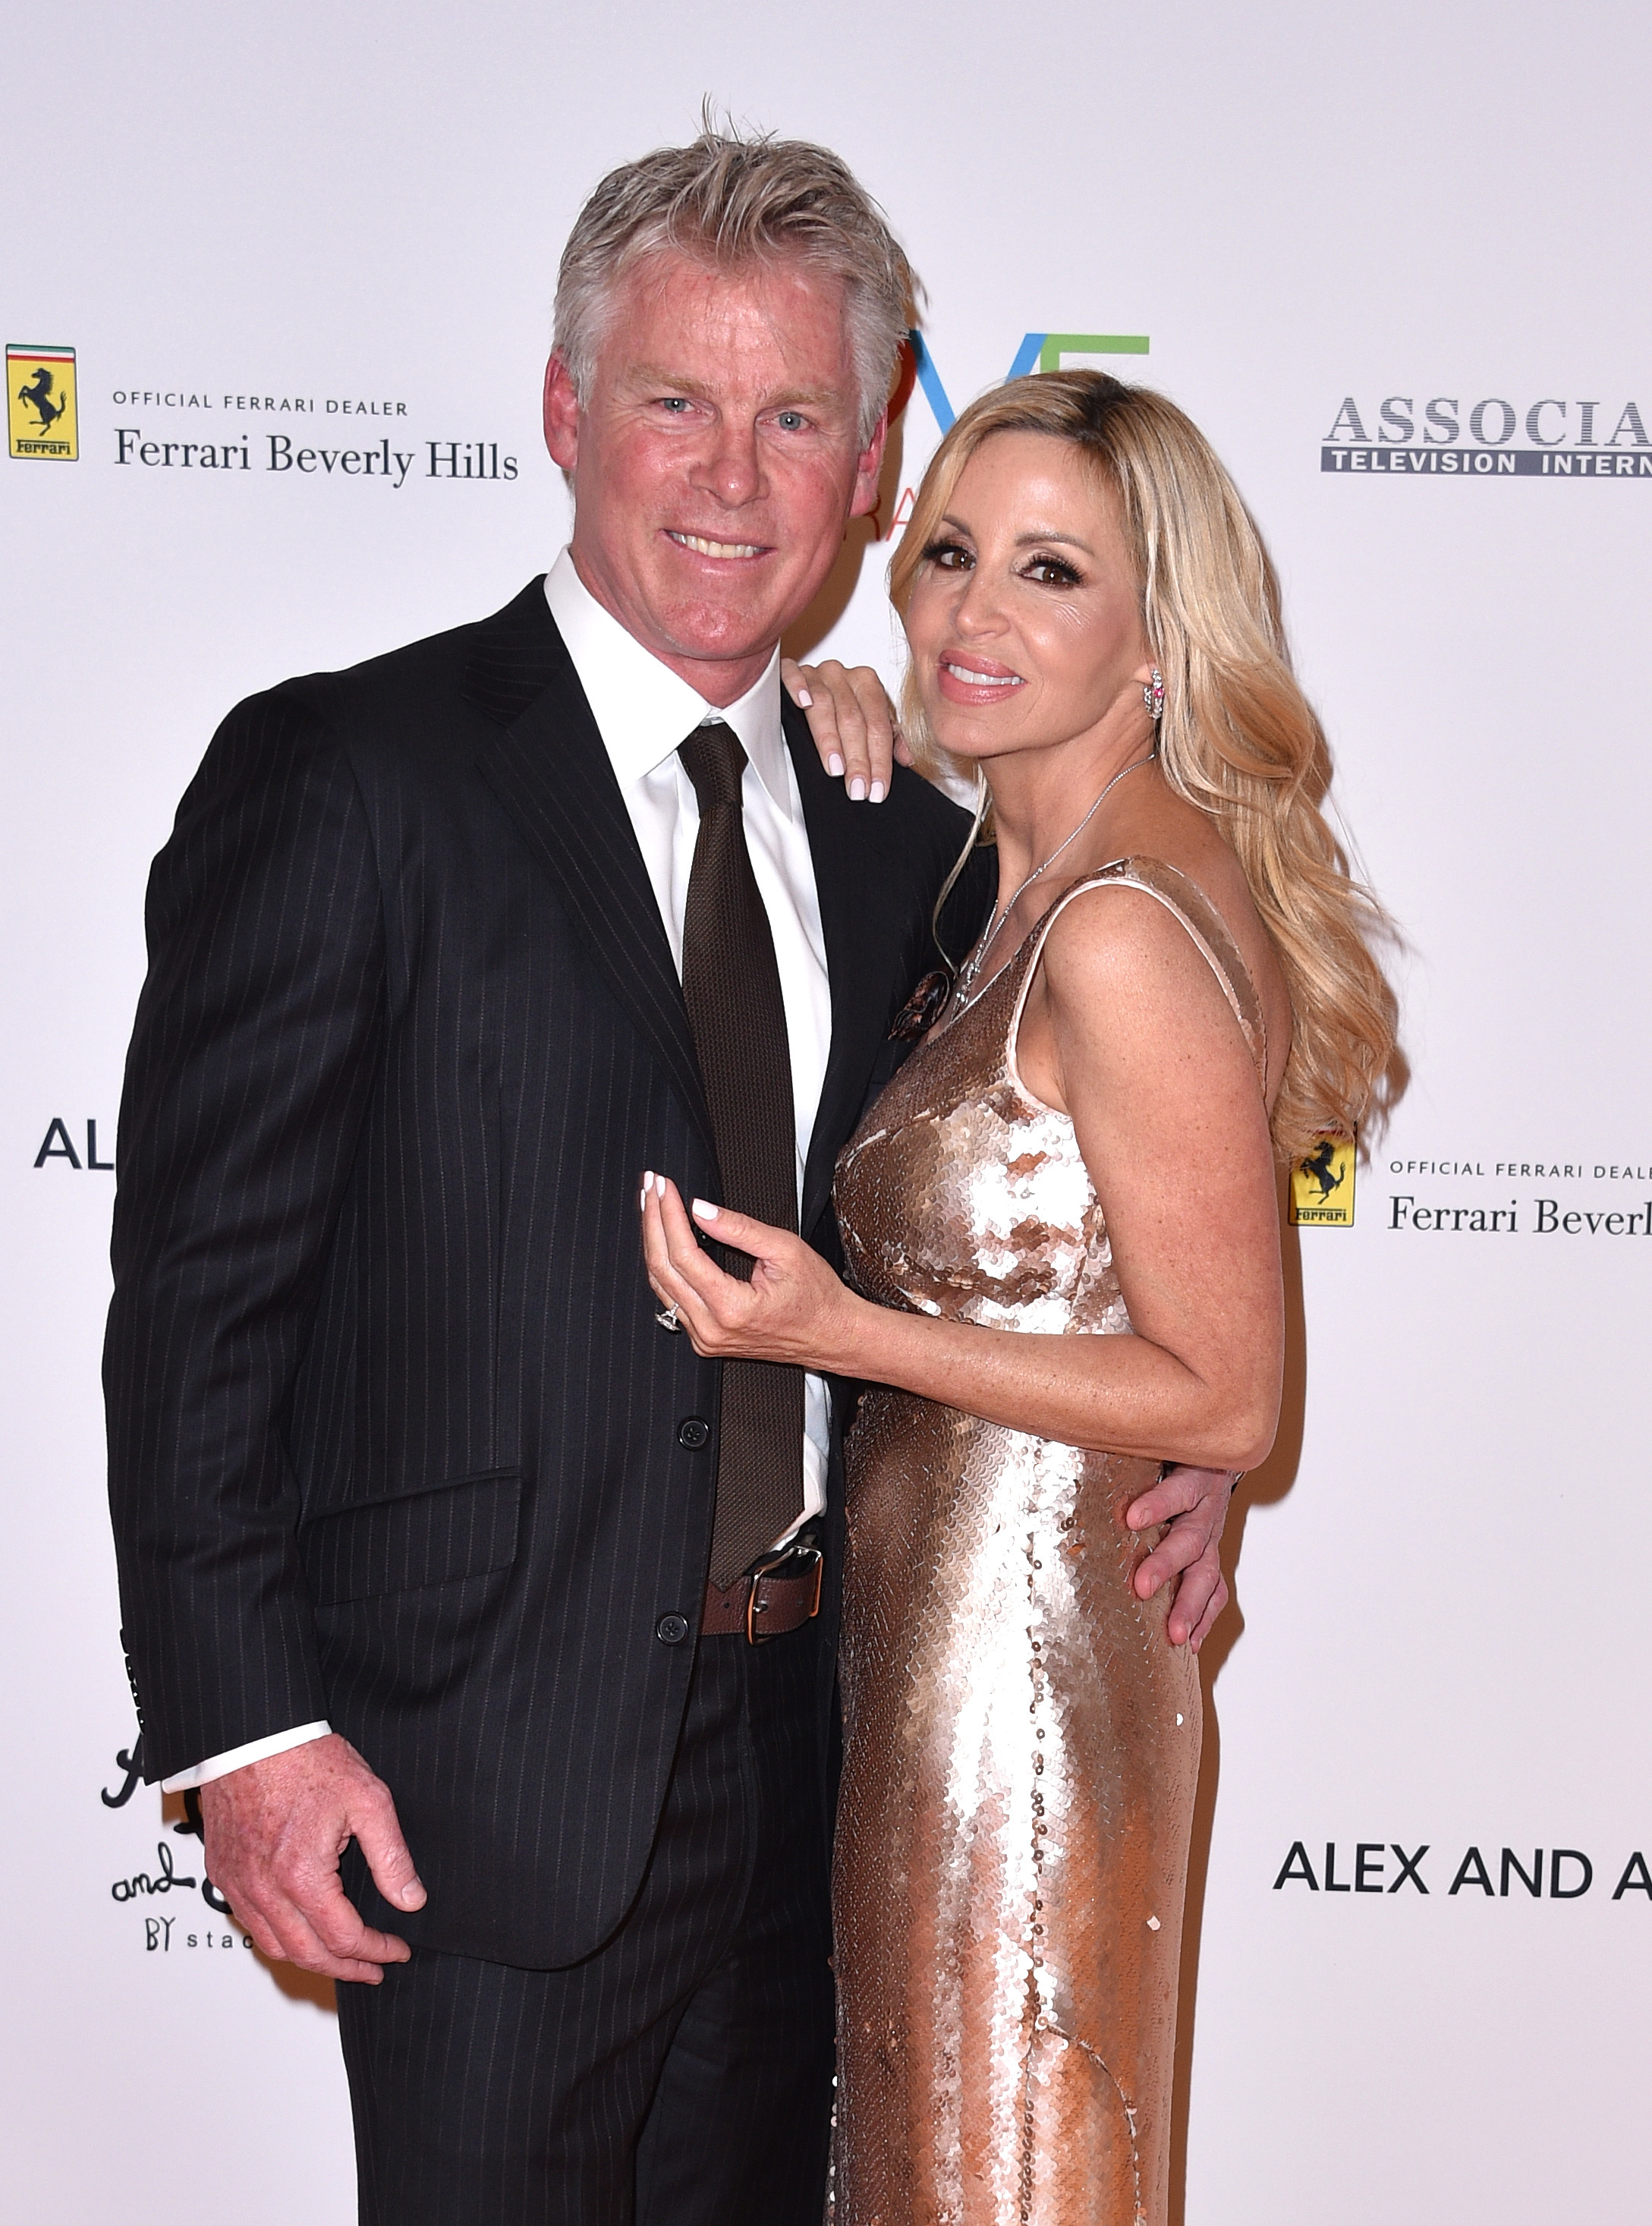 David C. Meyer and Camille Grammer attend the Race to Erase MS Gala in Los Angeles on April 20, 2018.